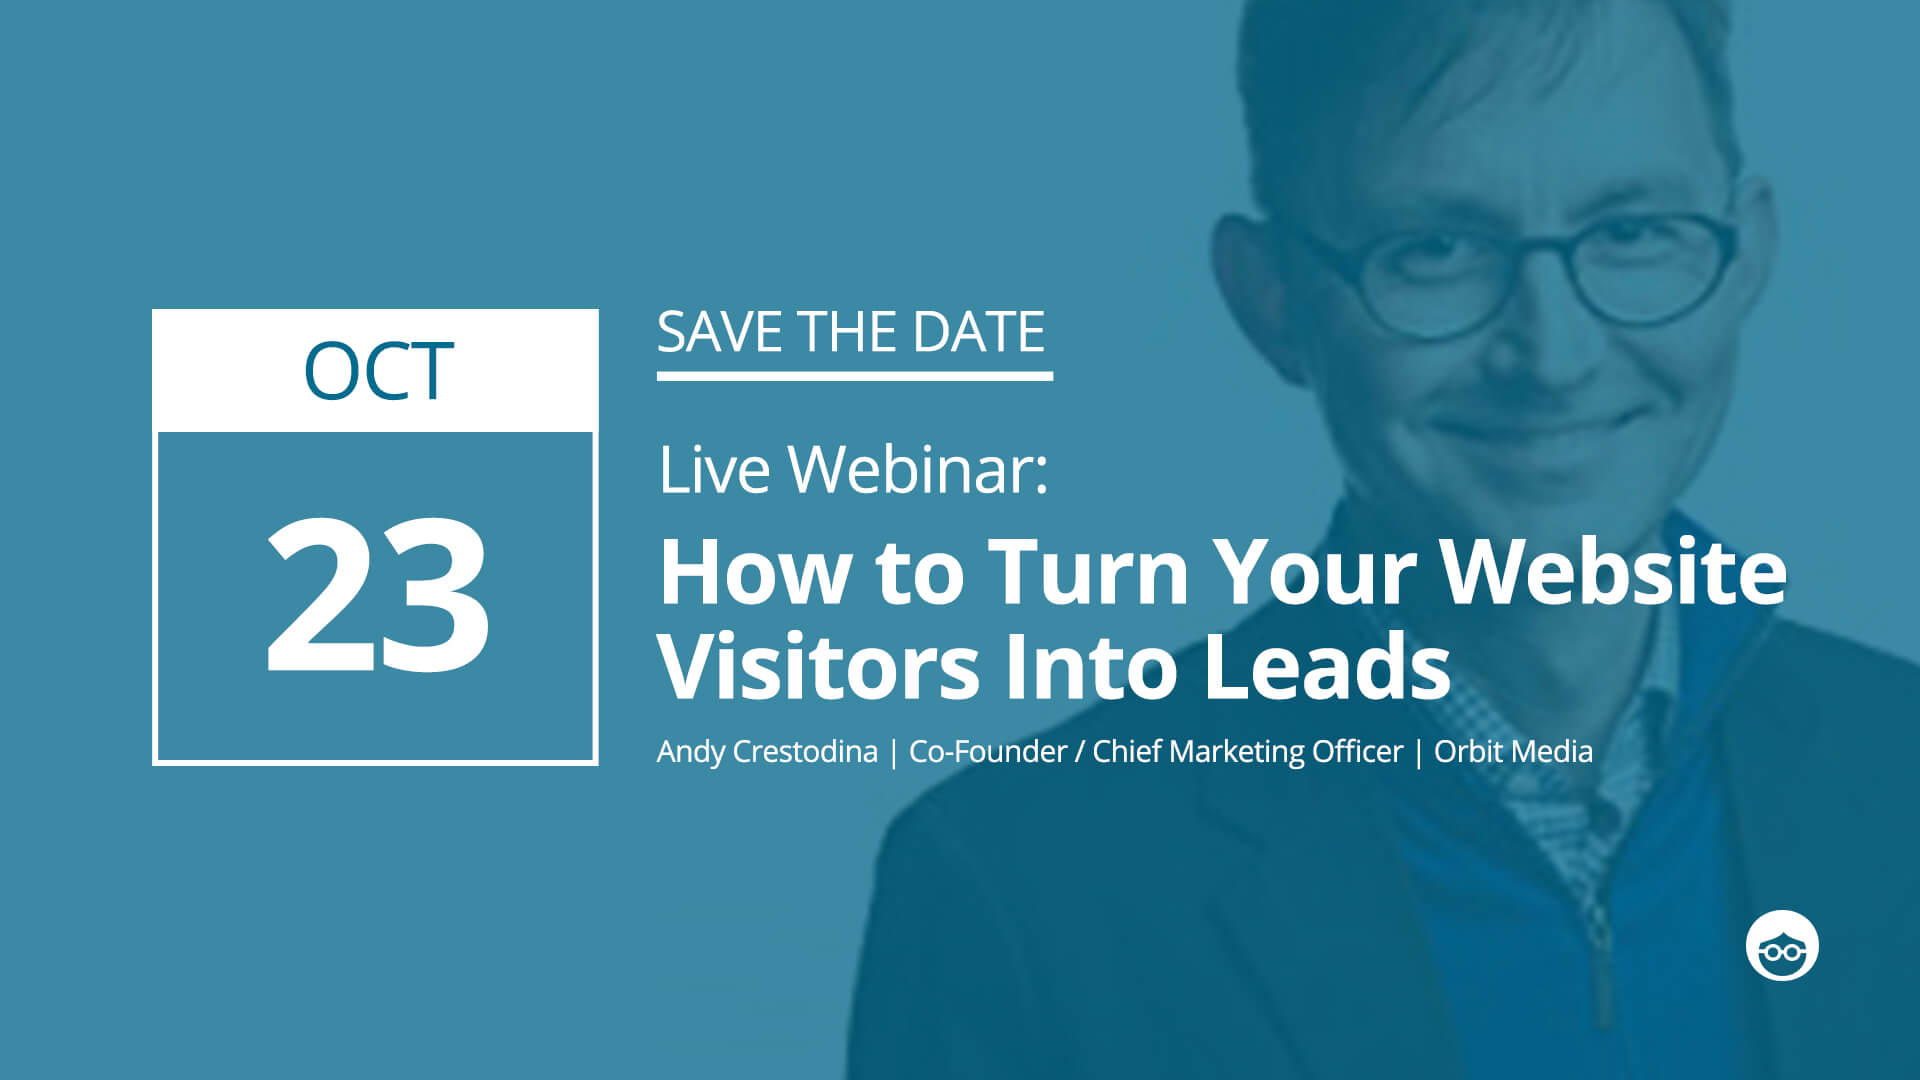 Webinar] How to Turn Your Website Visitors into Leads